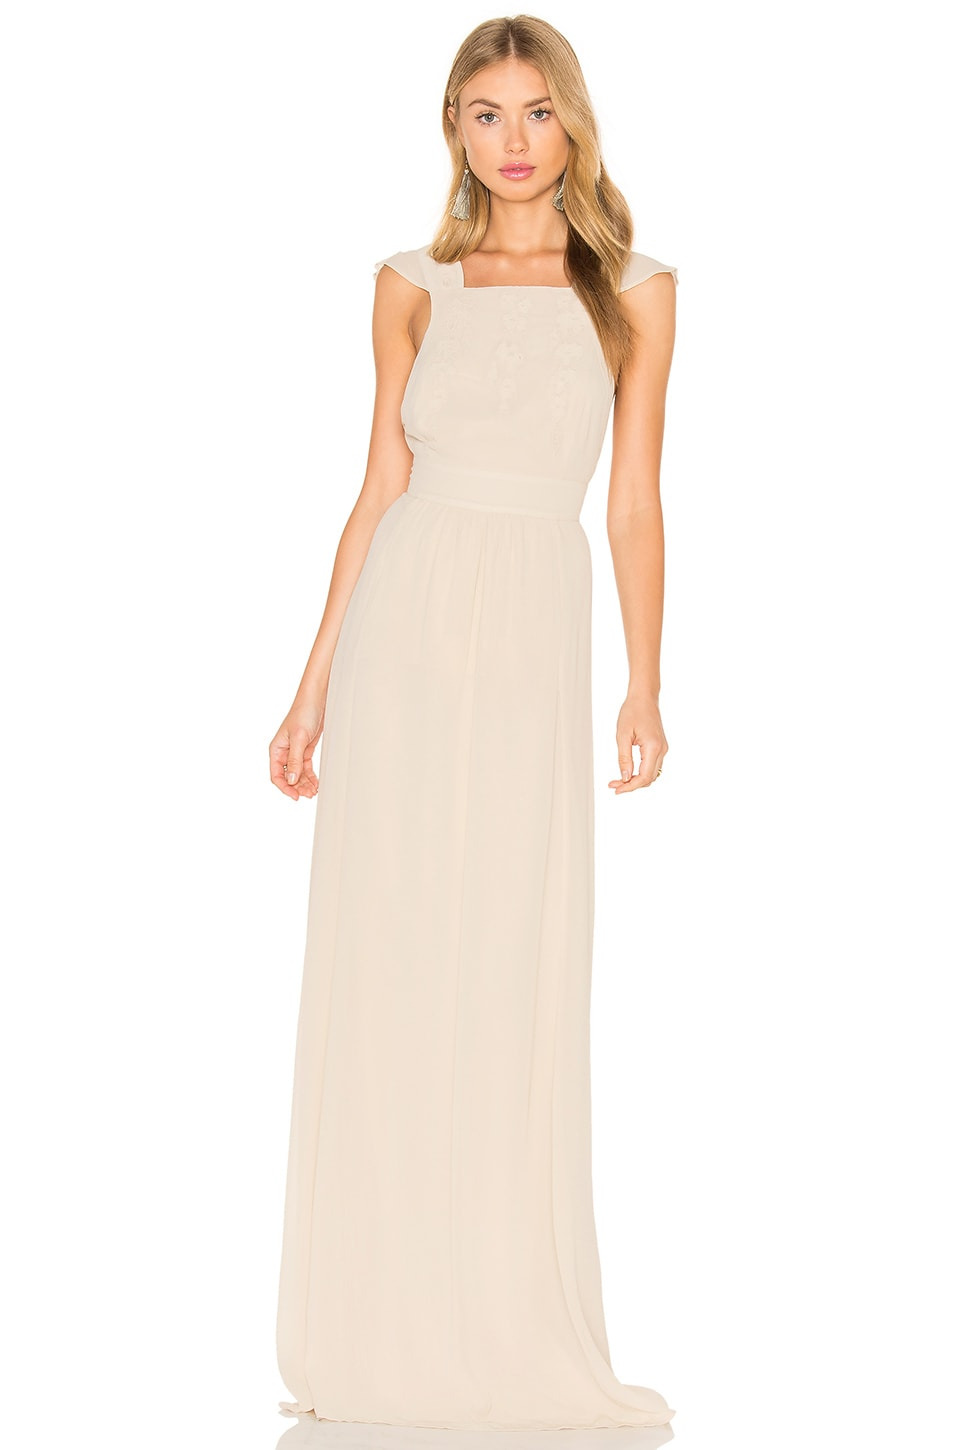 Hoss Intropia Sleeveless Square Neck Maxi Dress in Linen